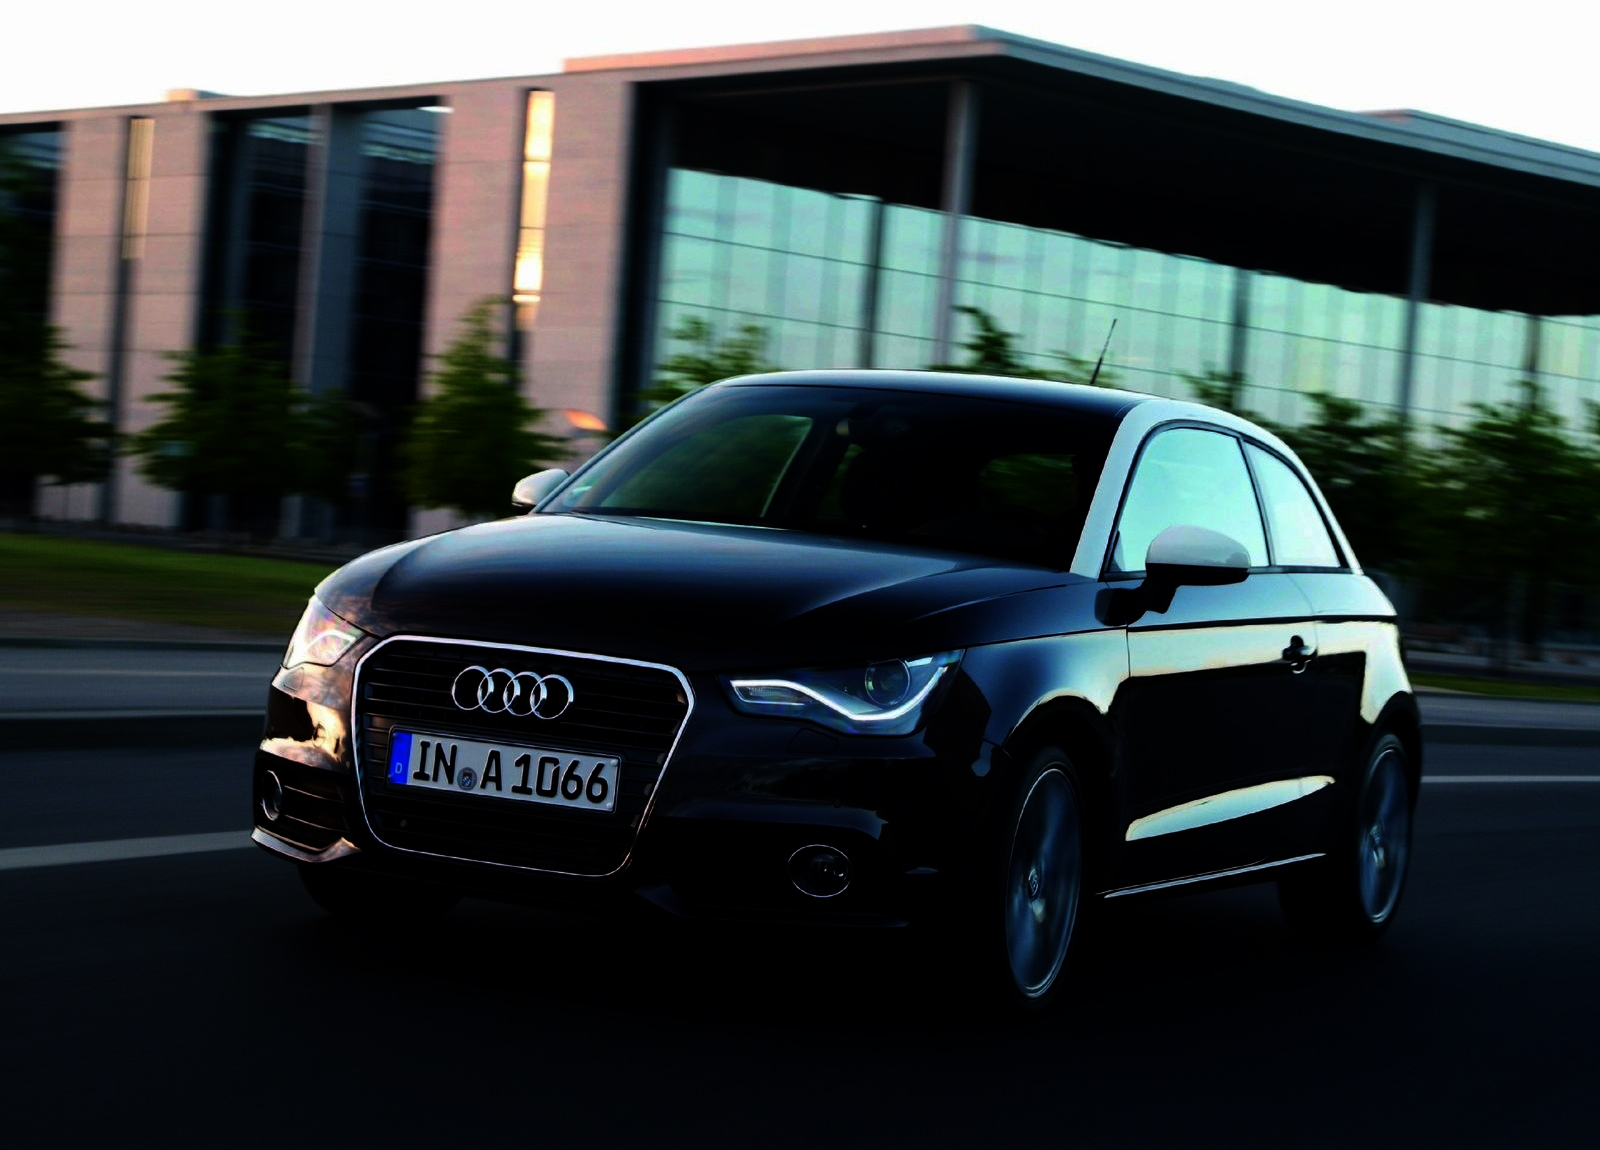 1600x1150 - Audi A1 Wallpapers 11